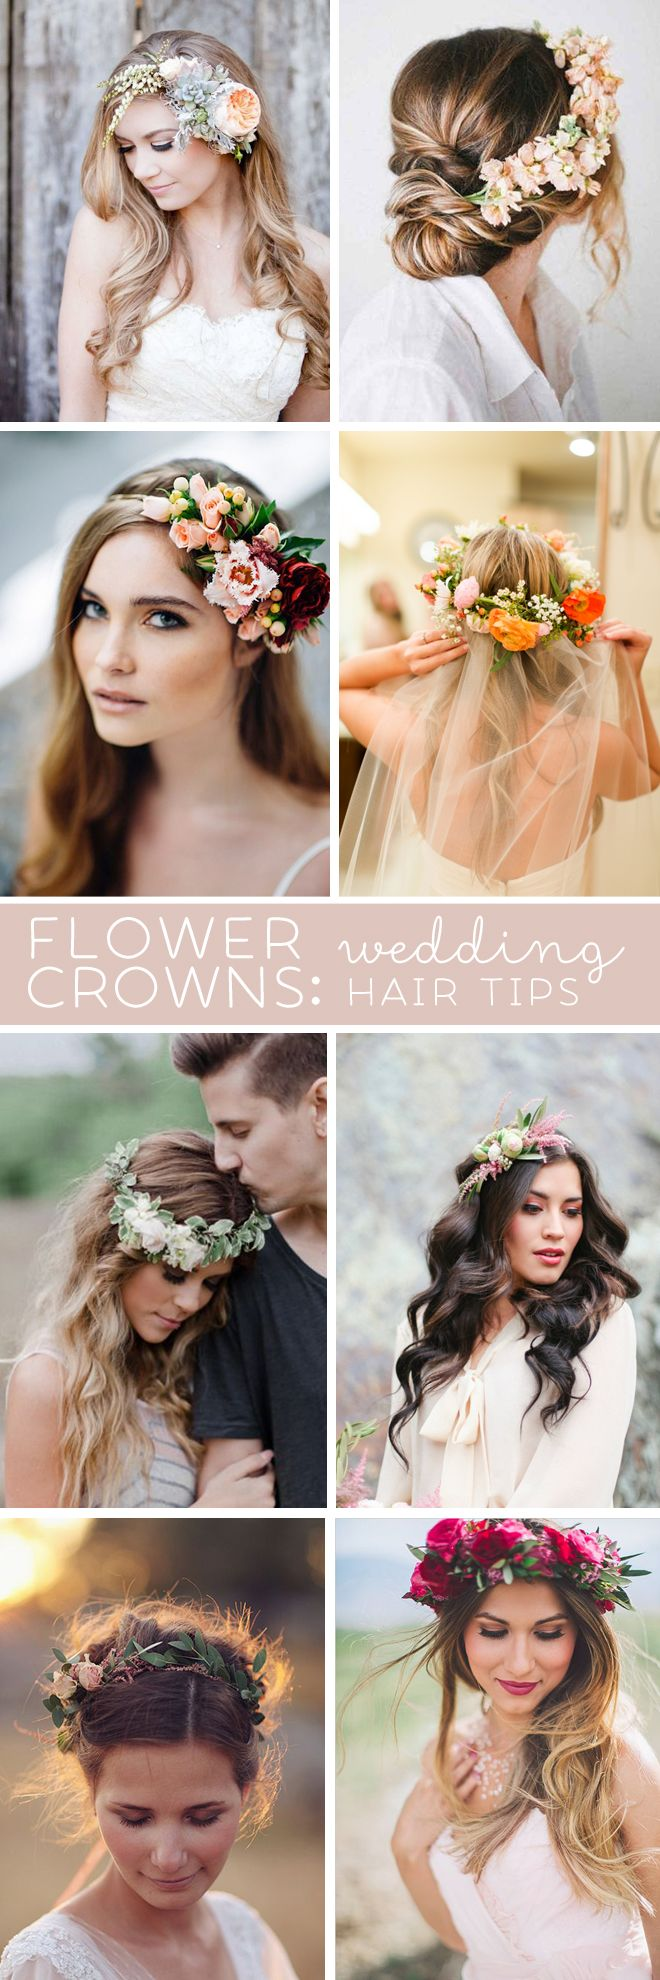 Awesome wedding hair tips for wearing flower crowns juls wedding boho wedding ideas ideas and more ideas about how to plan a wedding httpsitunesleauappthe gold wedding plannerid498112599mt8 izmirmasajfo